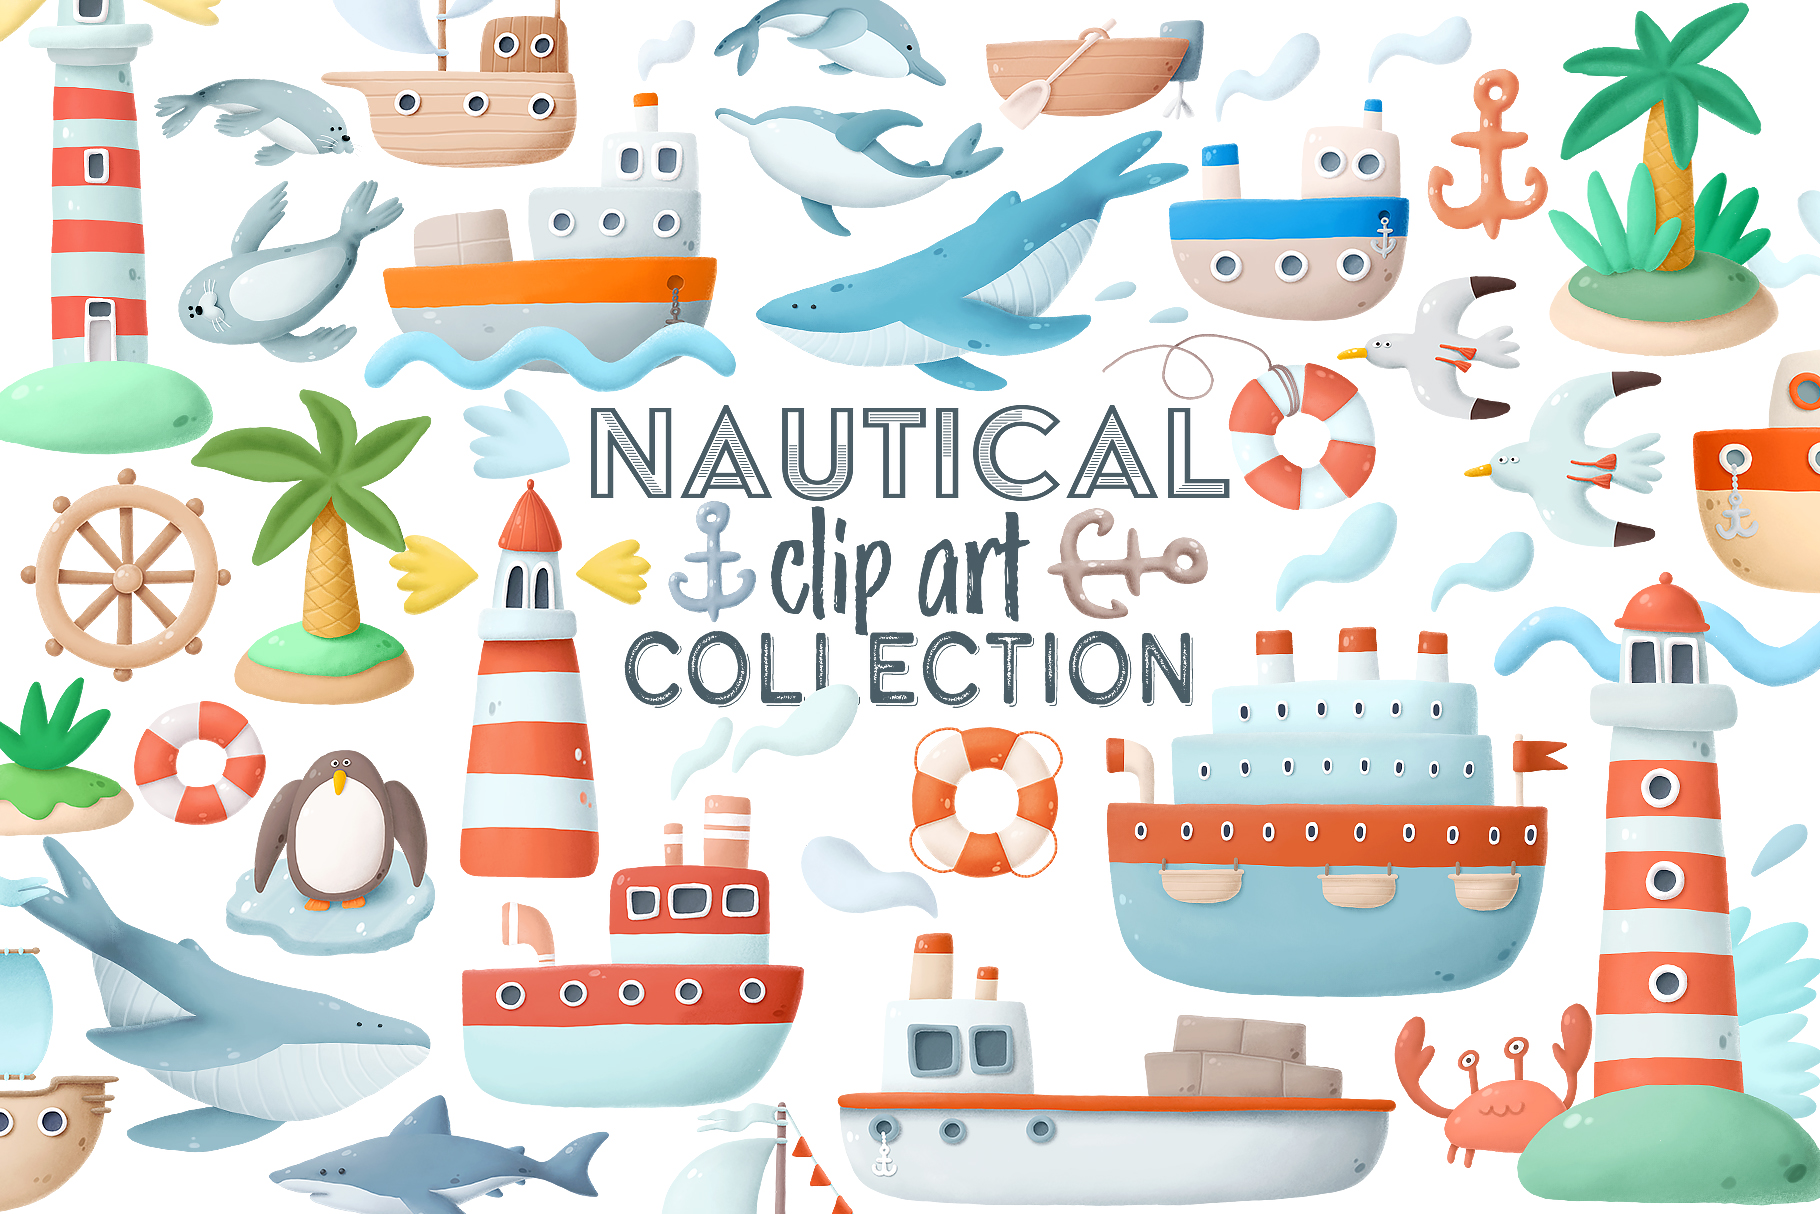 Nautical clip art collection example image 5